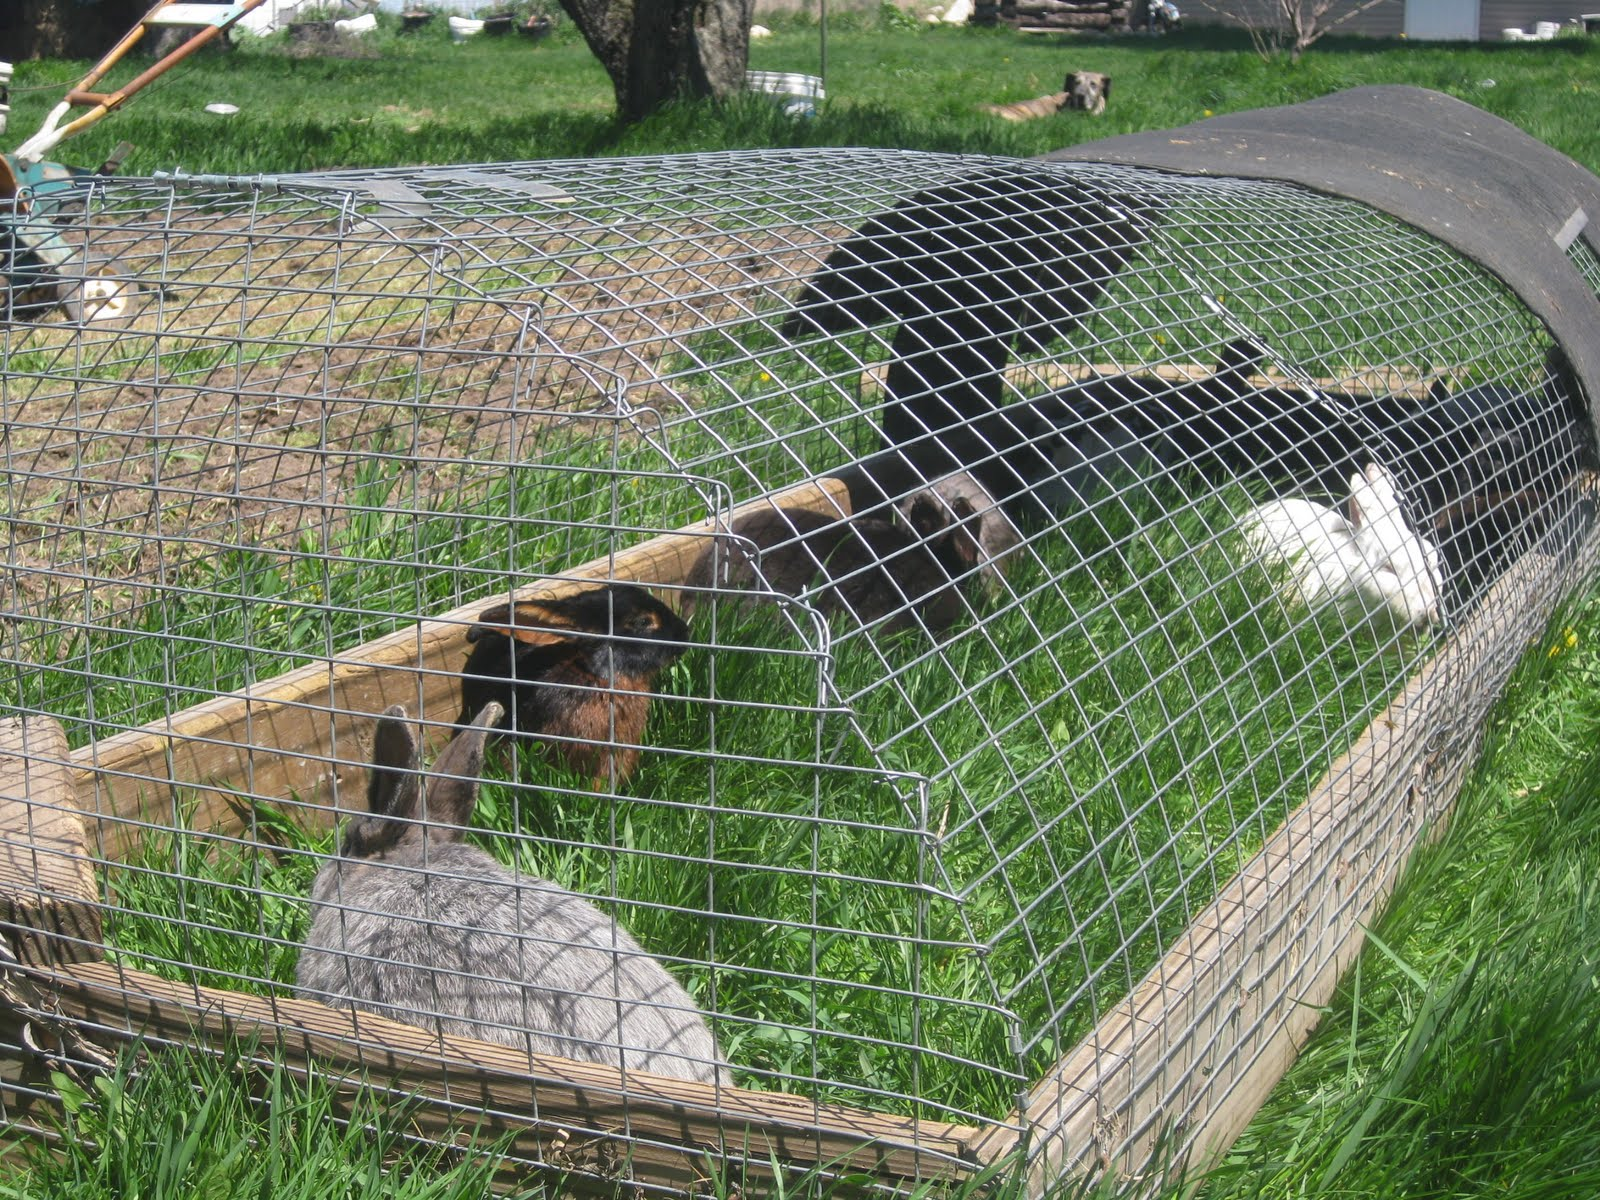 dollyrockfarm: I don't care for mowing the Lawn...Part 1